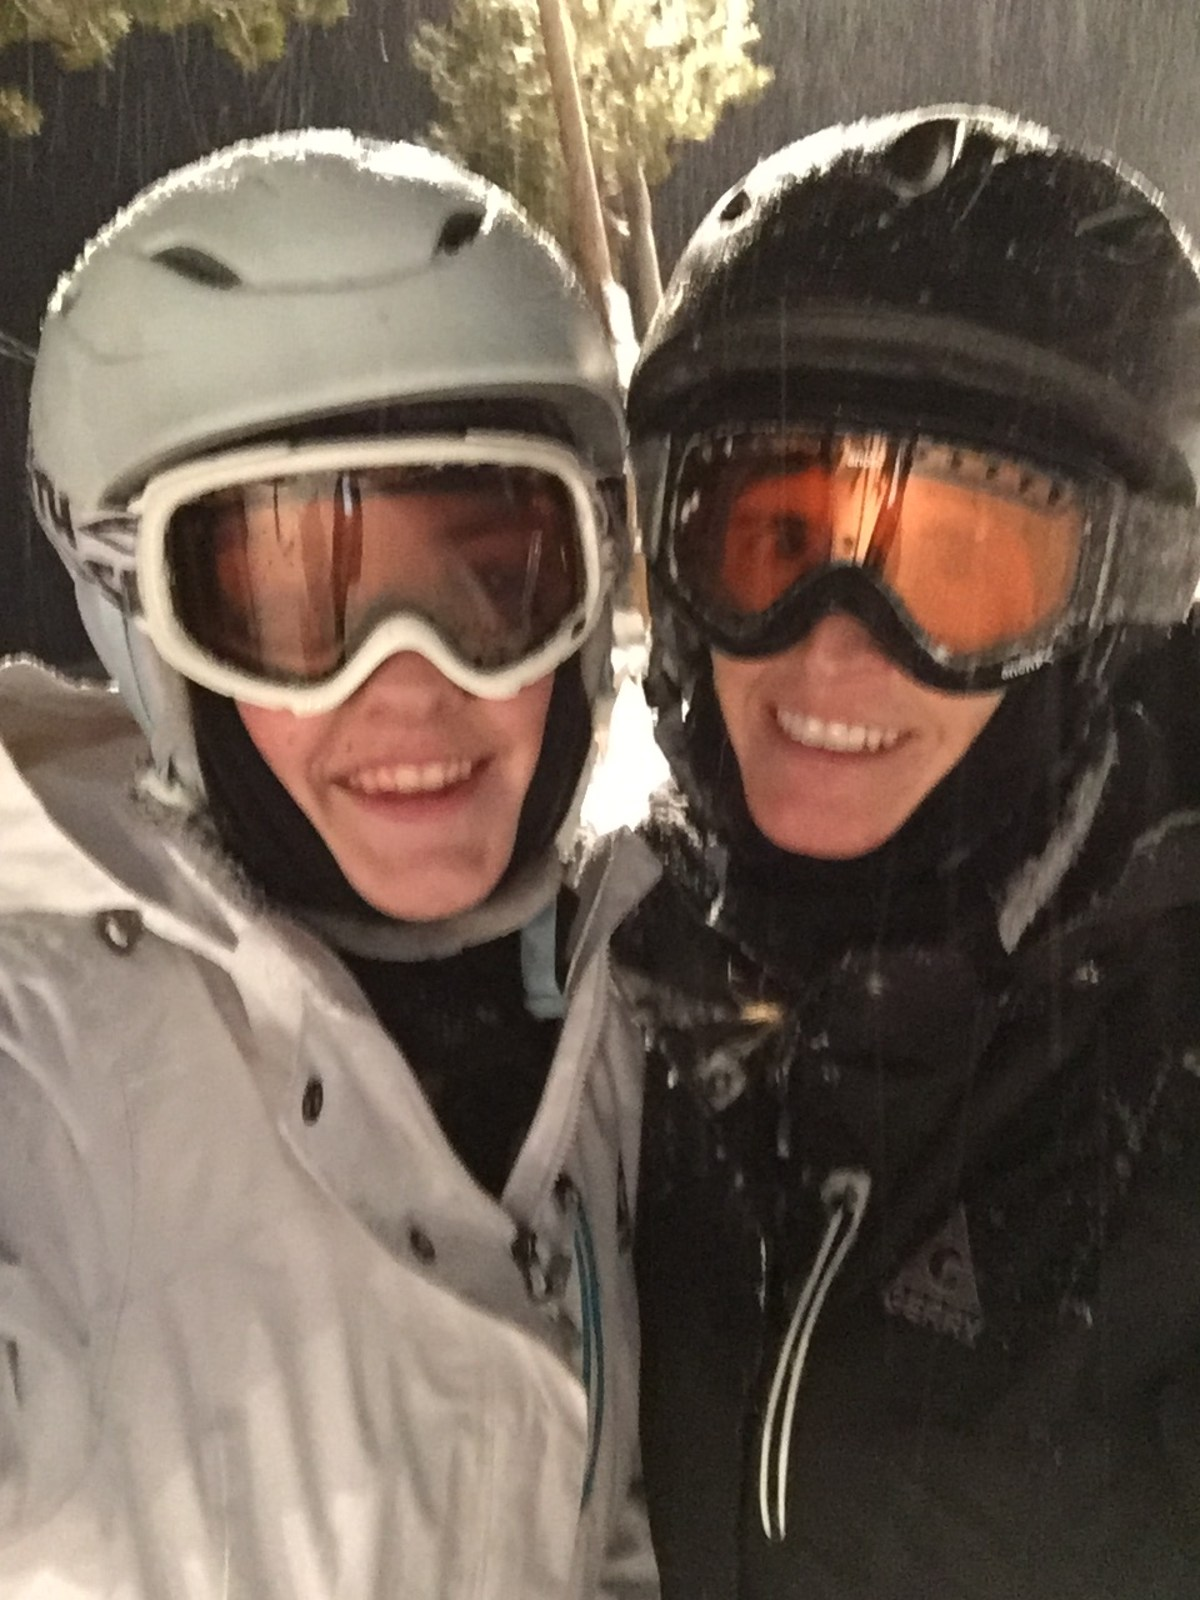 Skiing with my daughter